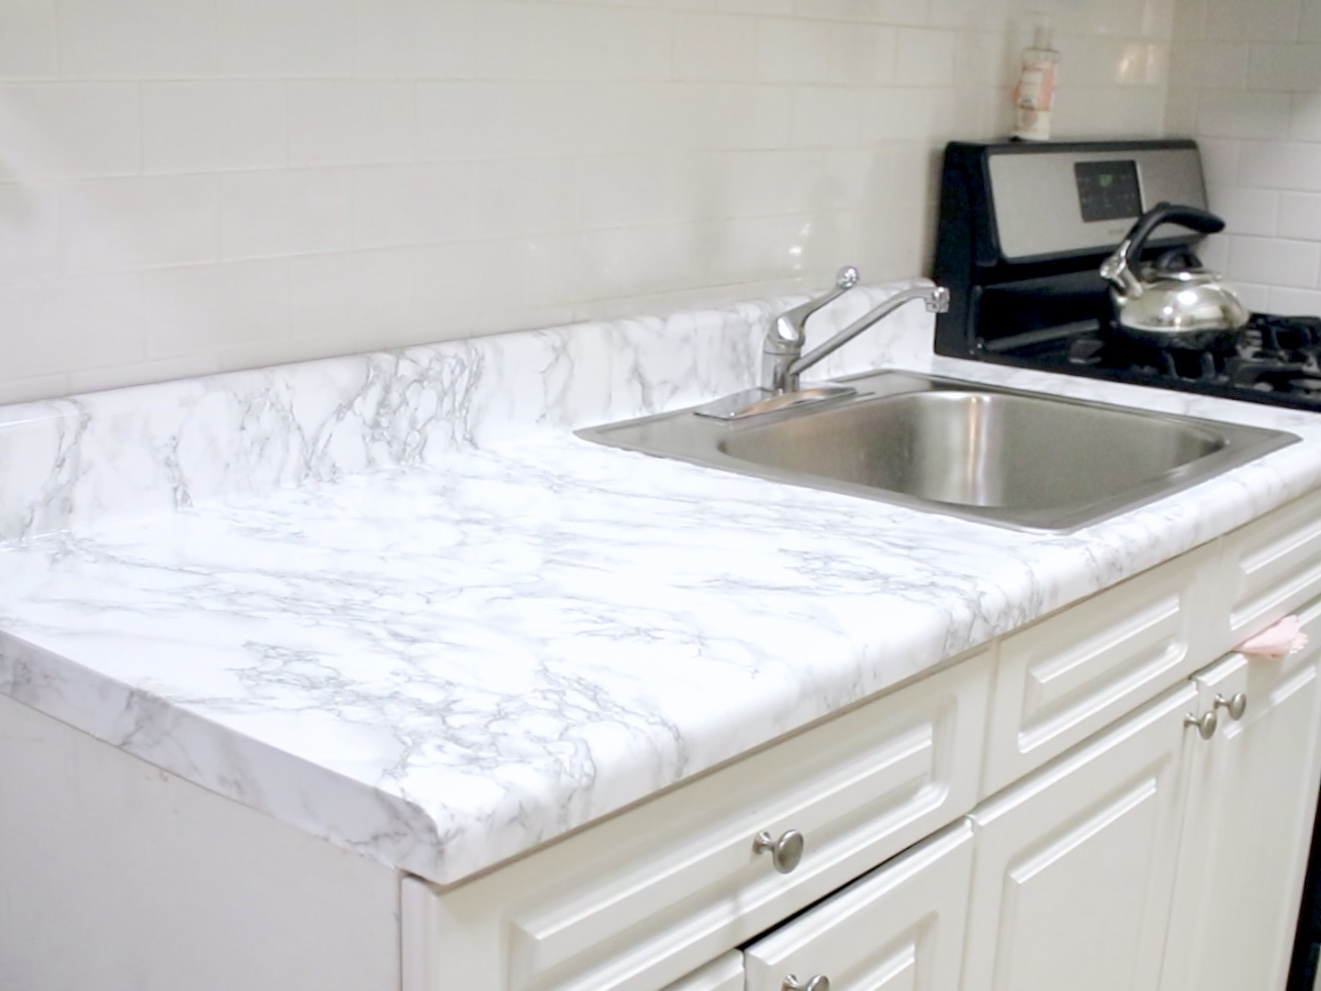 ... Marble Counter Tops Using Contact Paper In This Easy And Inexpensive  DIY Kitchen Project Tutorial. This Project May Be Cheap But Itu0027ll Make Your  Kitchen ...